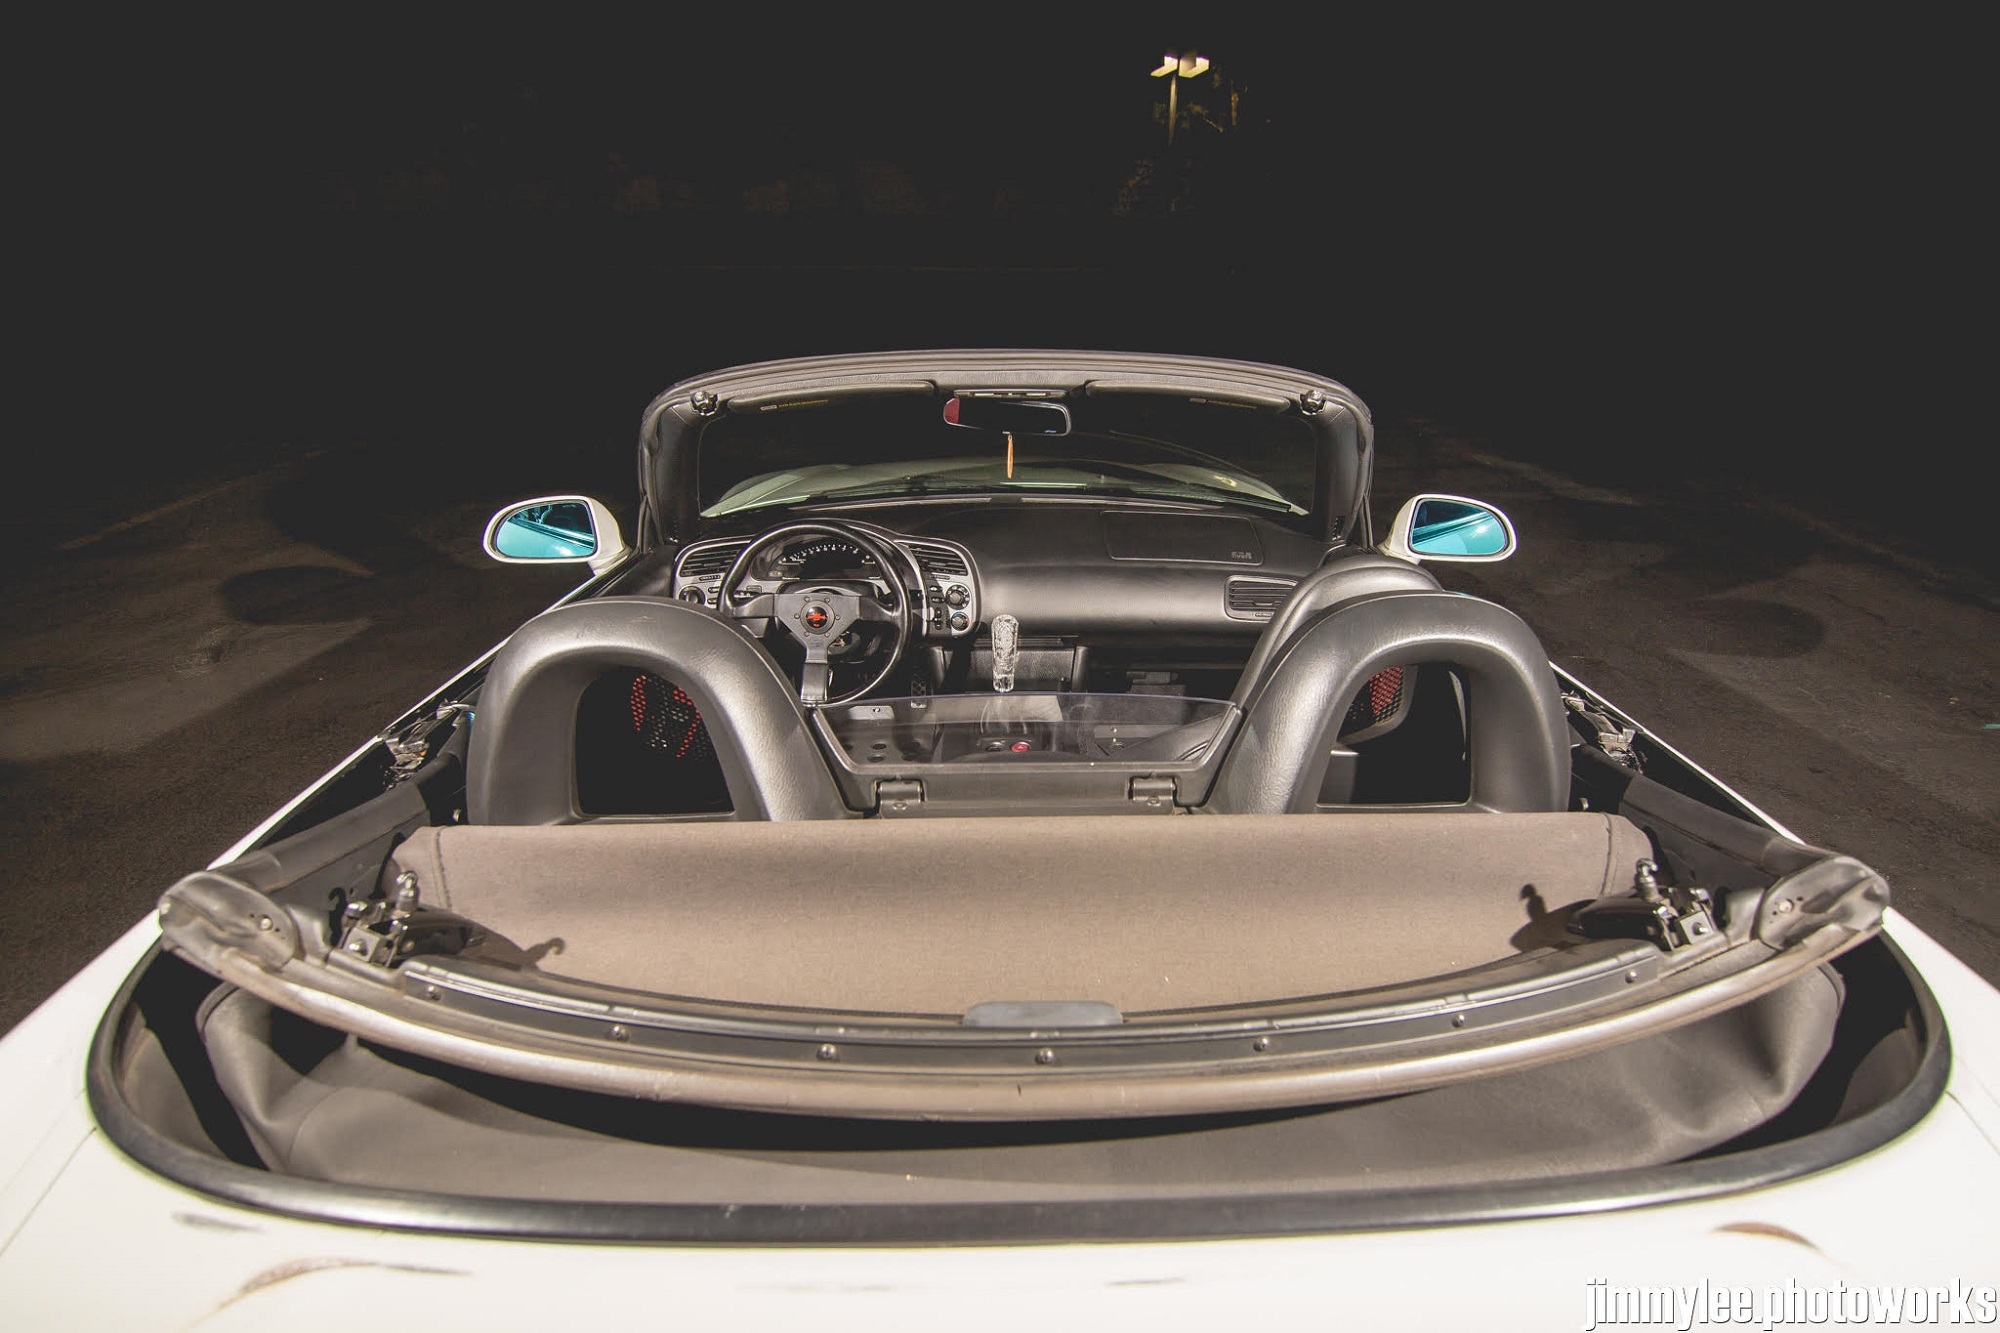 S2Ki.com Honda S2000 Ap1 Forum Member Highlight Project BAEMAXX